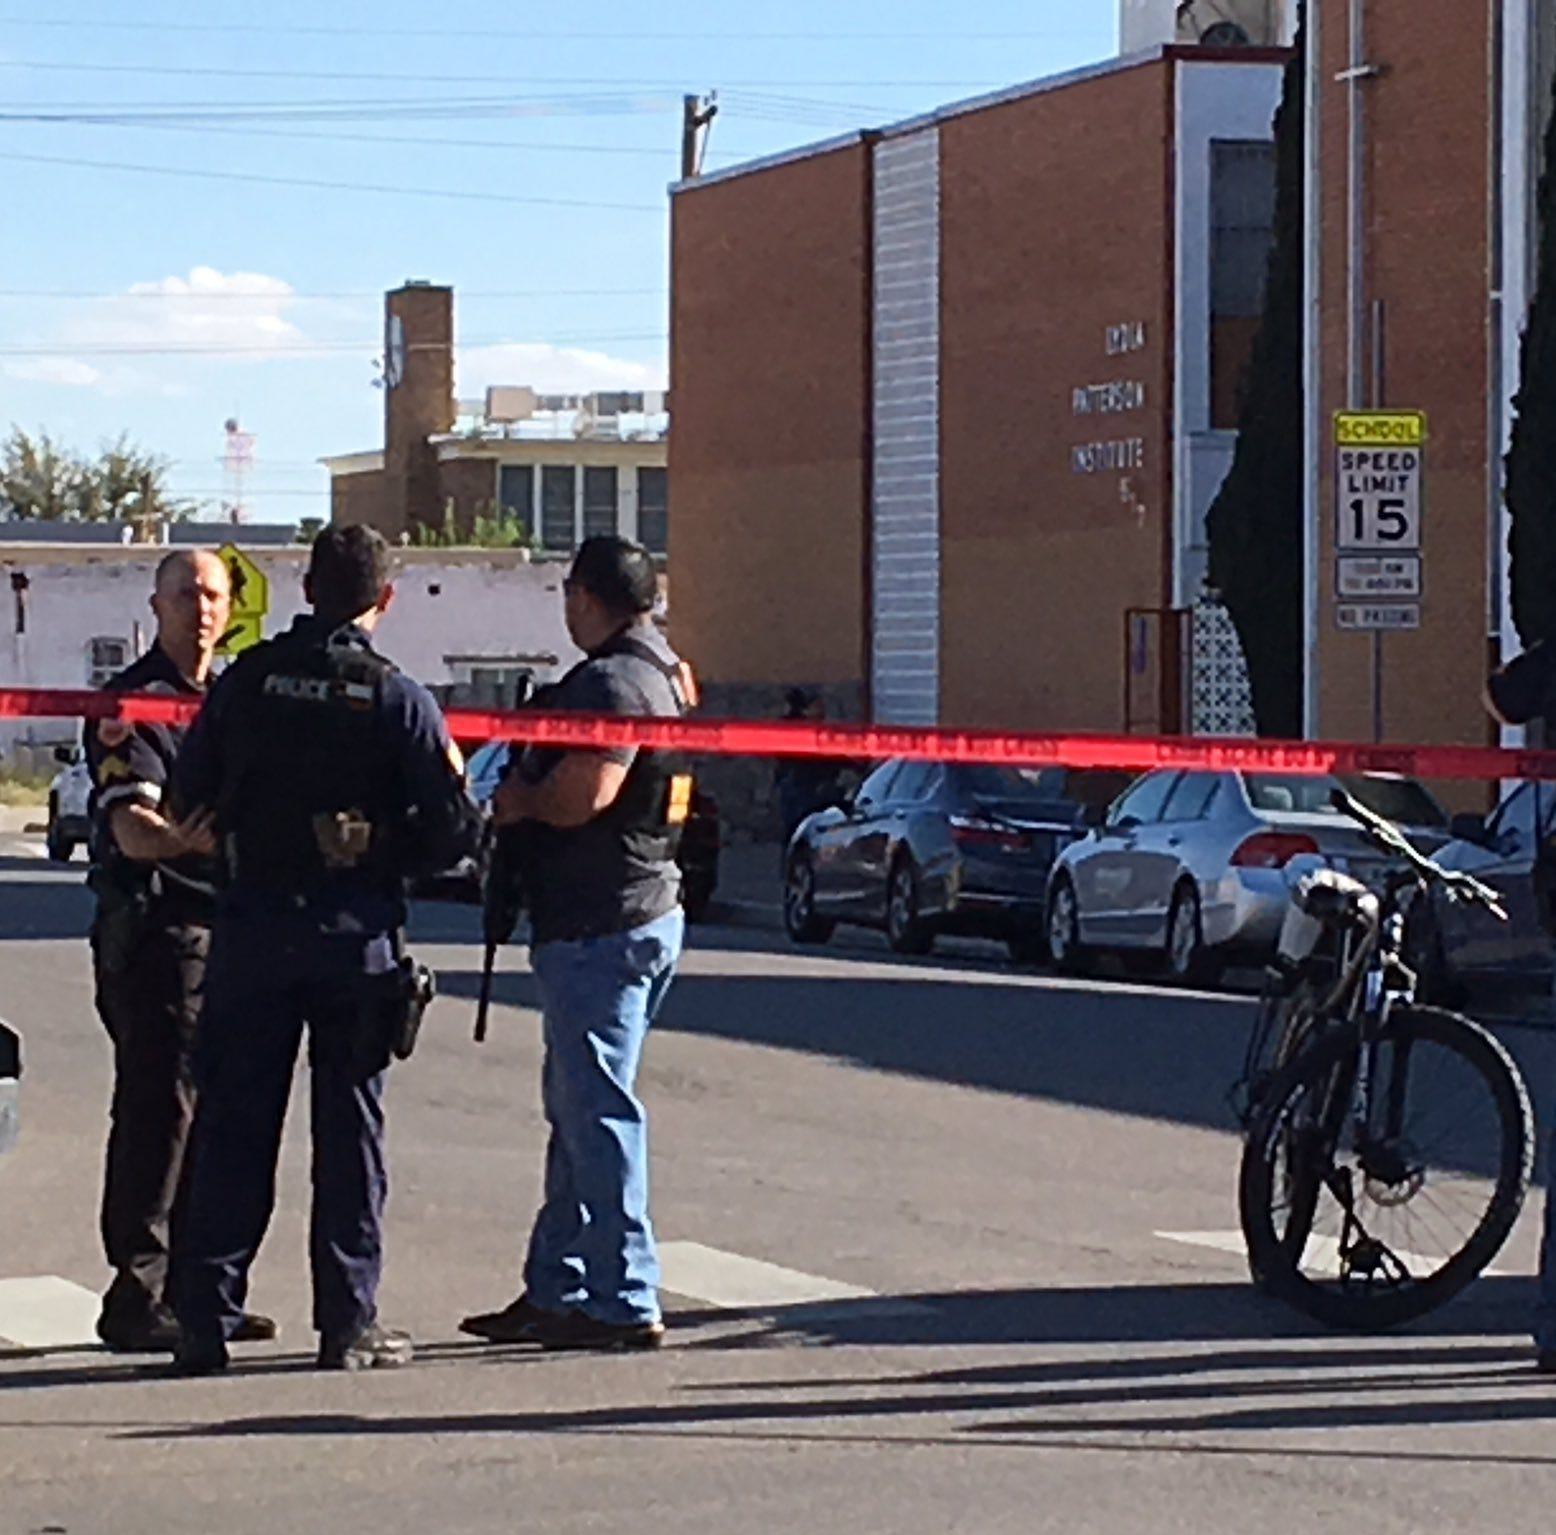 1 hurt in shooting in El Paso near Mexican Consulate that leads to arrest, school lockdown